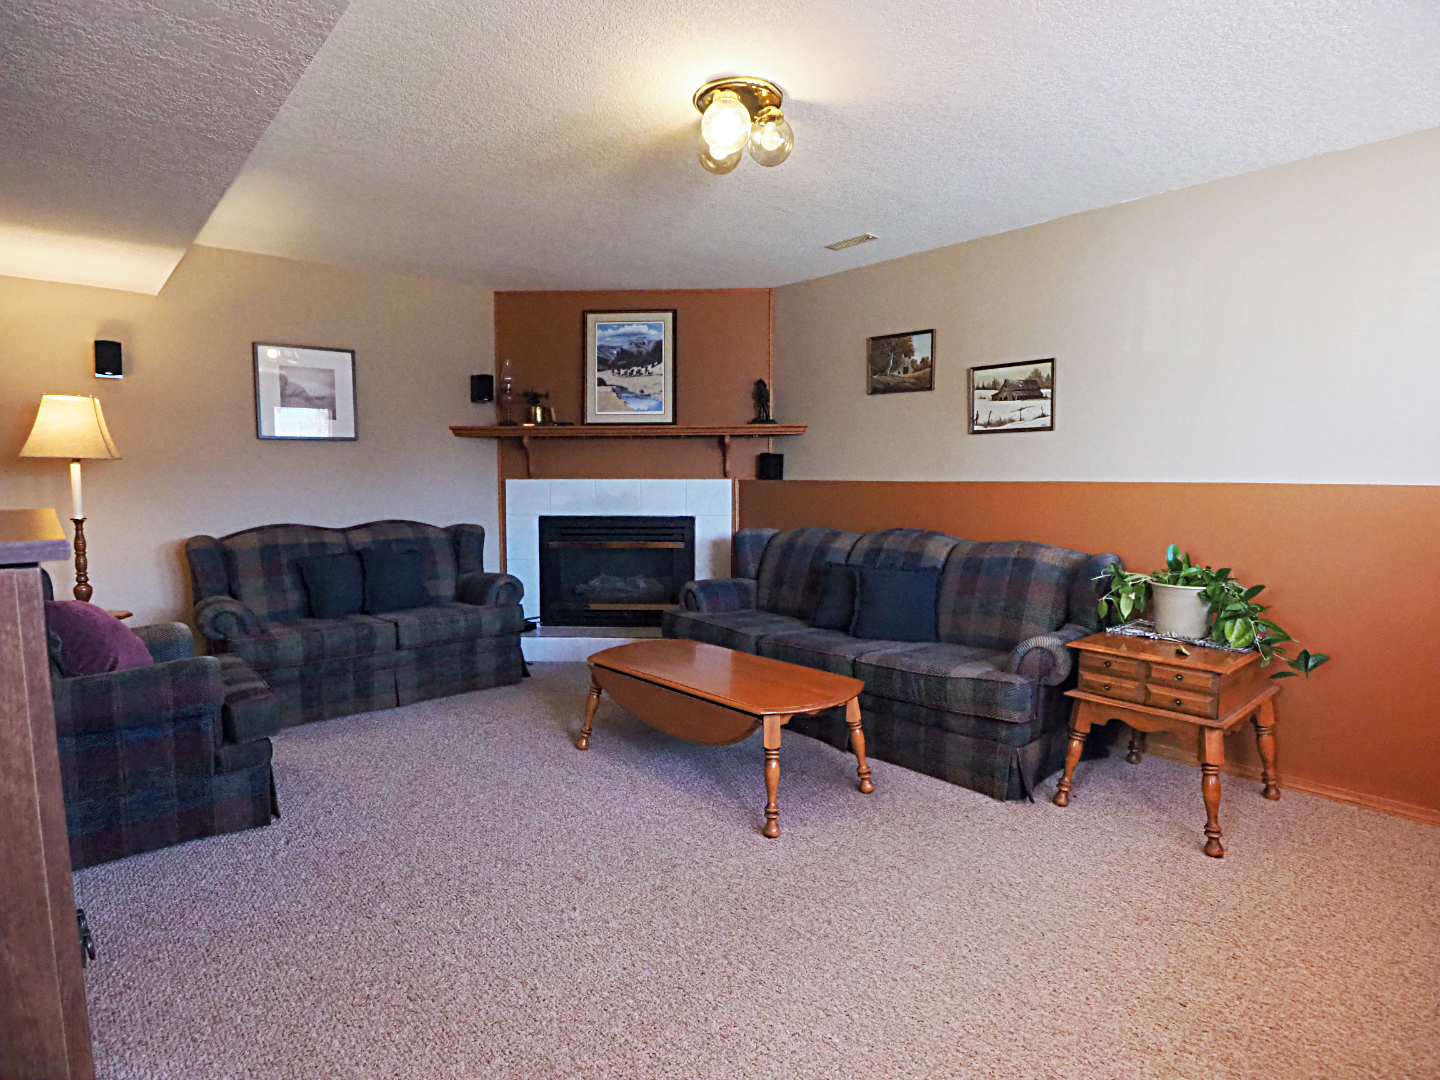 66 Excell Street family room